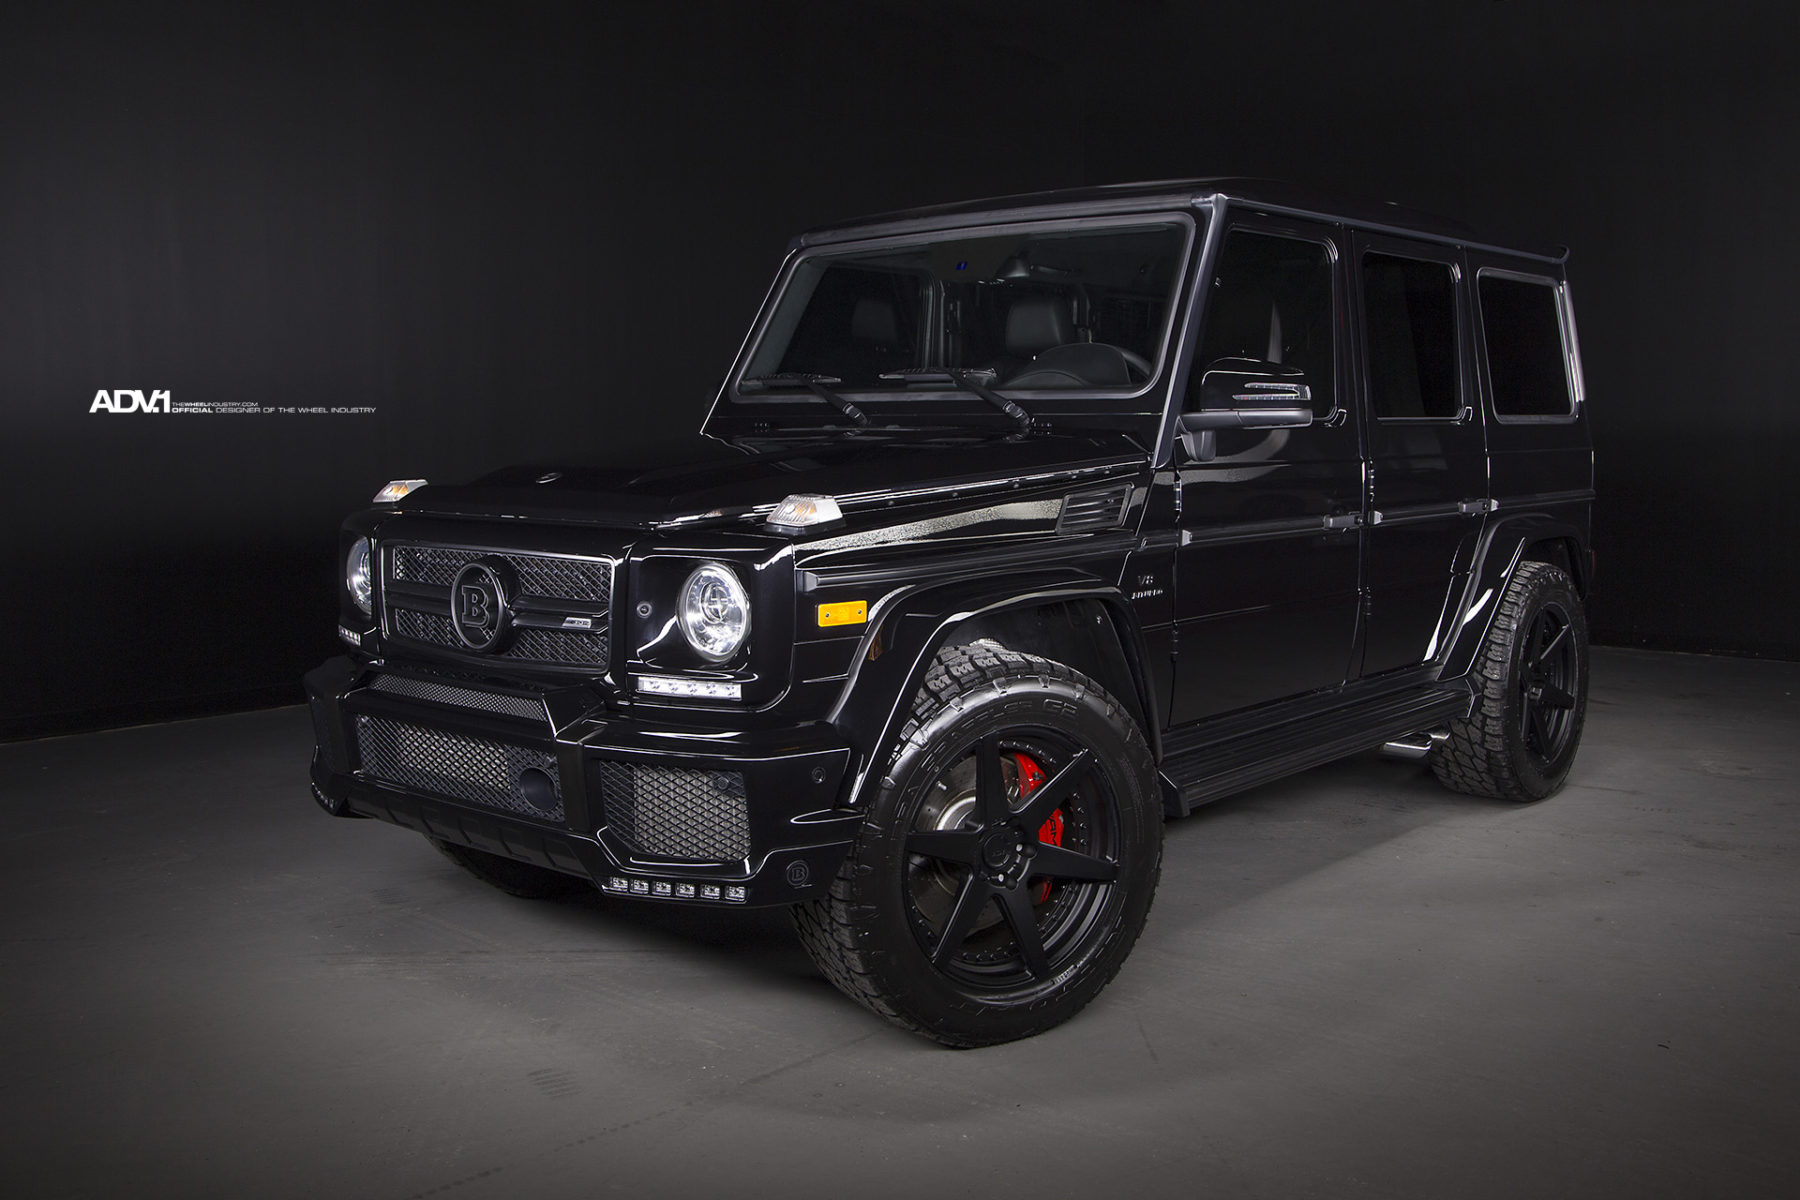 brabus mercedes benz g63 amg gets refined with adv 1. Black Bedroom Furniture Sets. Home Design Ideas